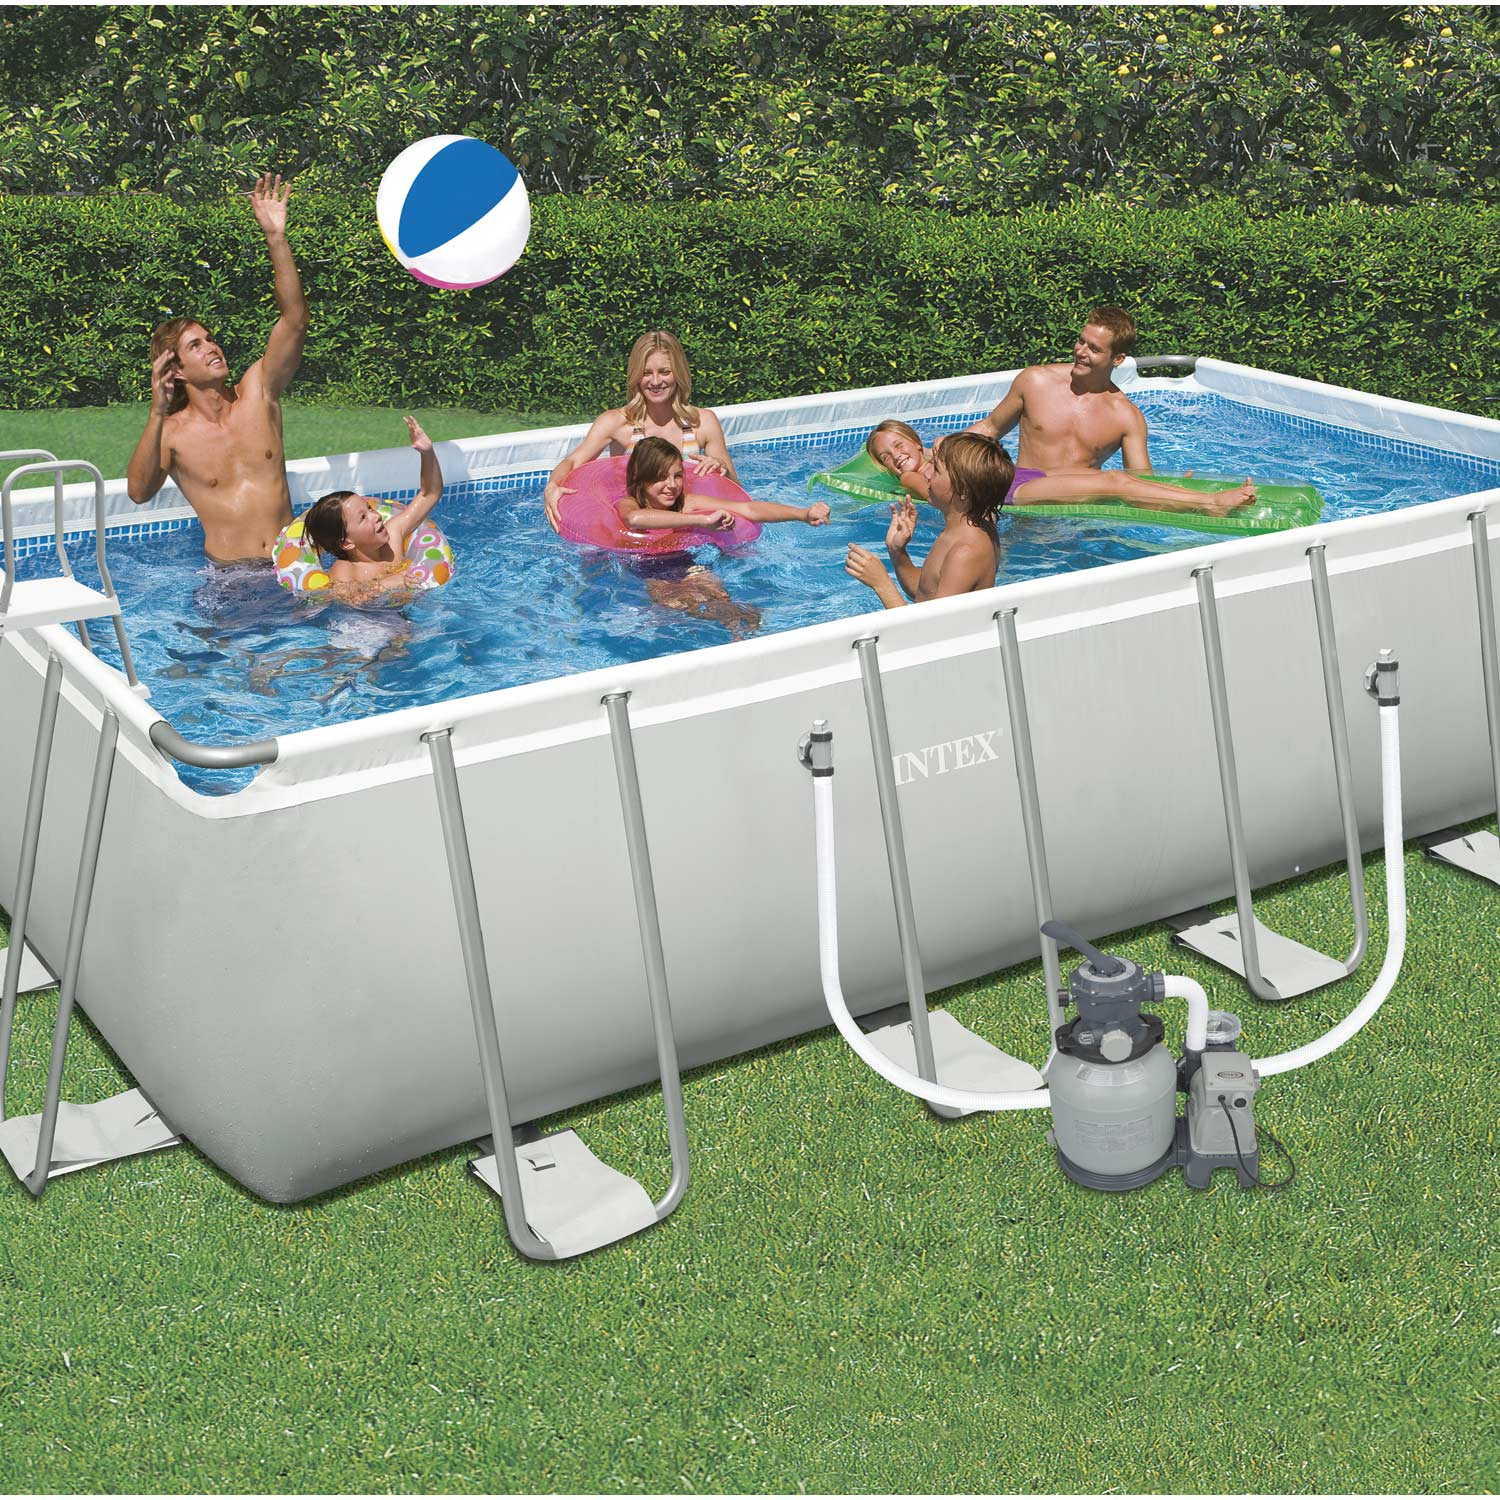 Piscine hors sol autoportante tubulaire ultra silver intex for Piscine hors sol a debordement